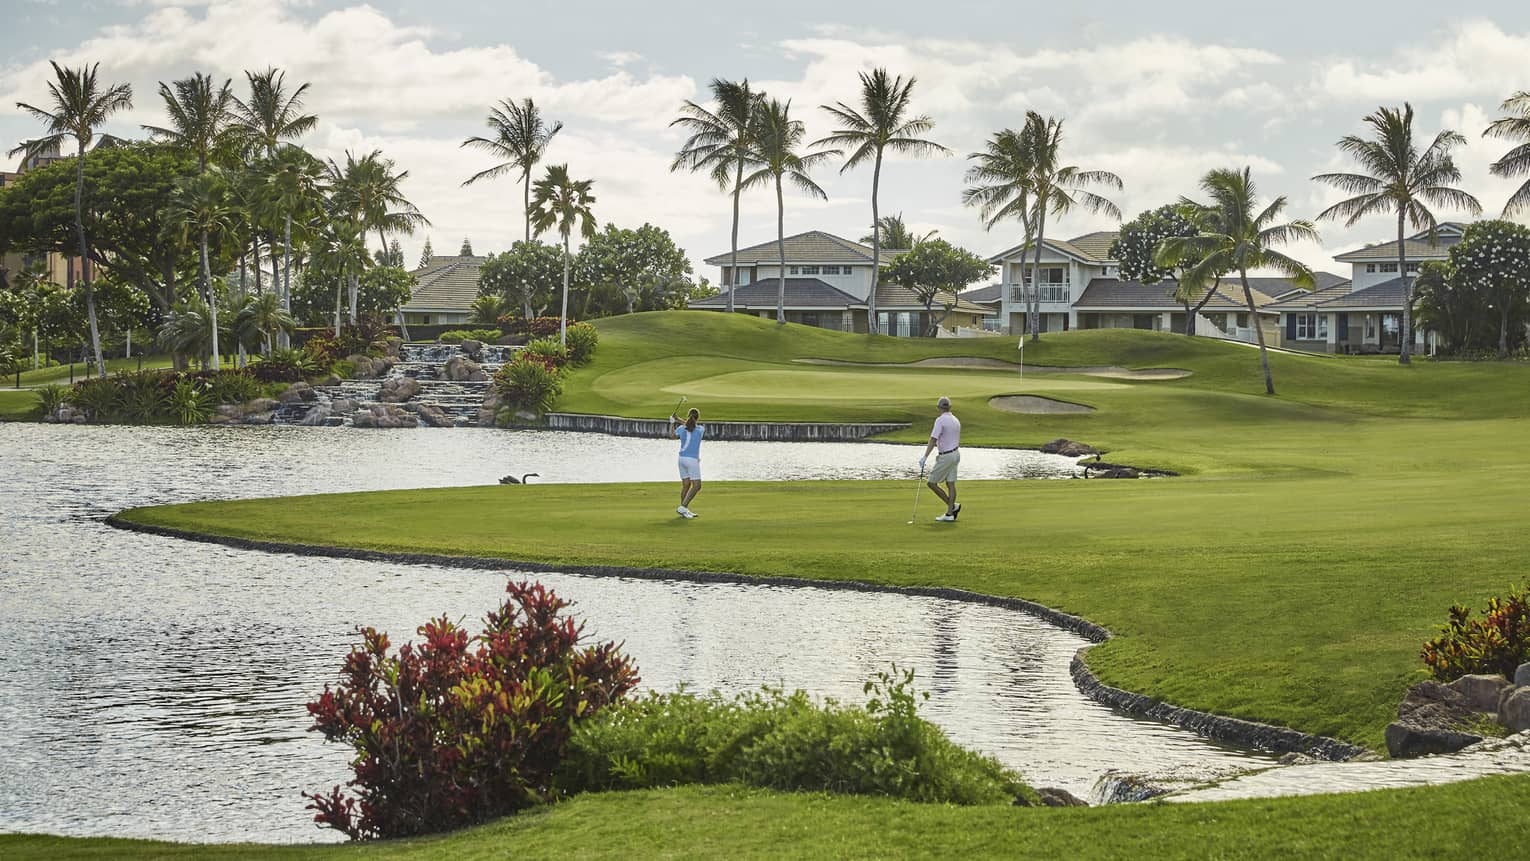 Woman swings golf club as man watches on Ko Olina Golf Club green by water, houses